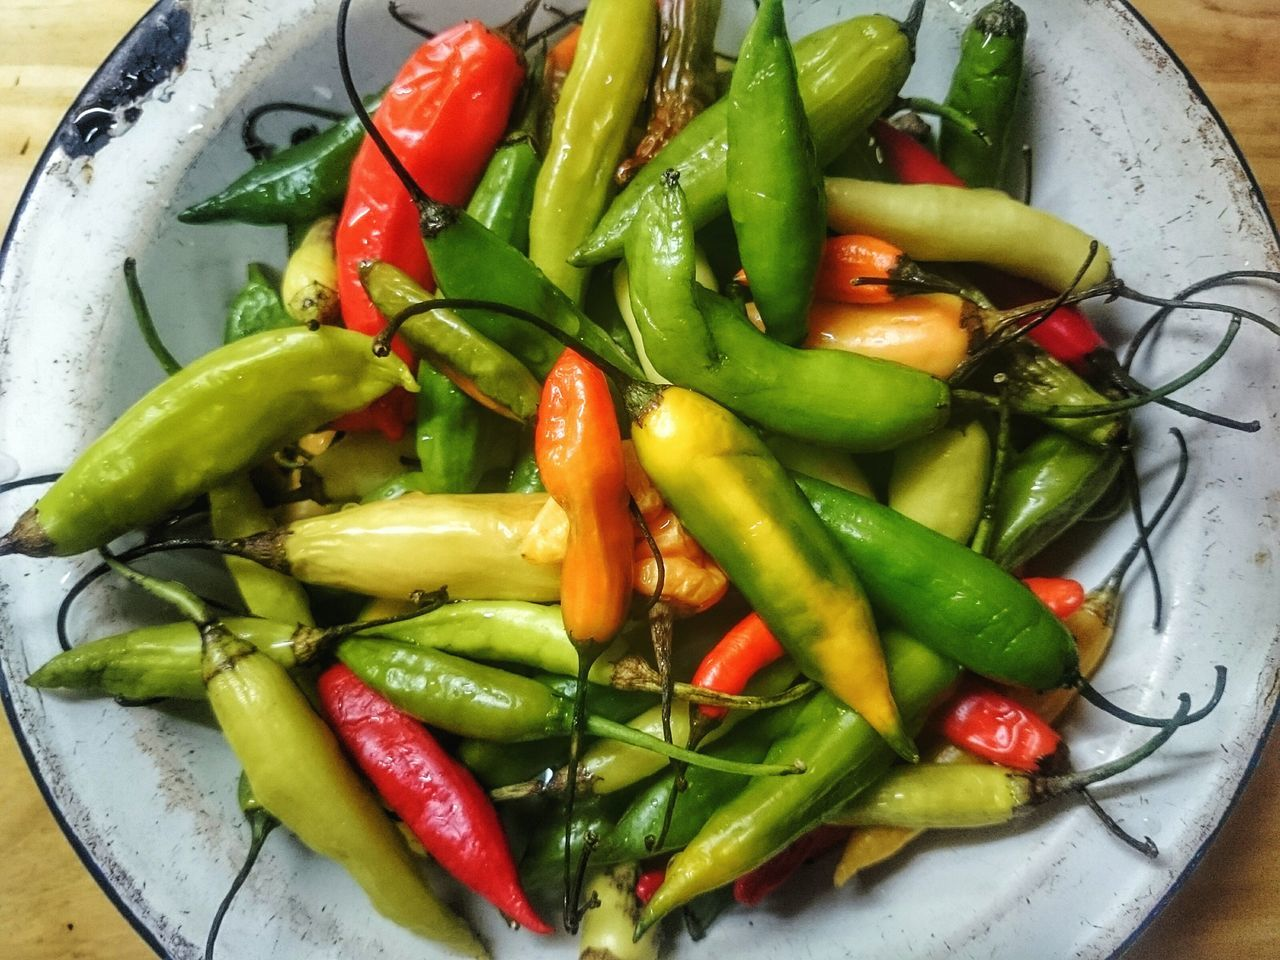 Chilis 🌶 Hot Chili Food And Drink Food Vegetable Freshness No People Chili Pepper Red Chili Pepper Green Chili Pepper Close-up Indoors  Foodphotography Springtime Chilies Mercado central de Buenos Aires UnykaProductions Unykacocina